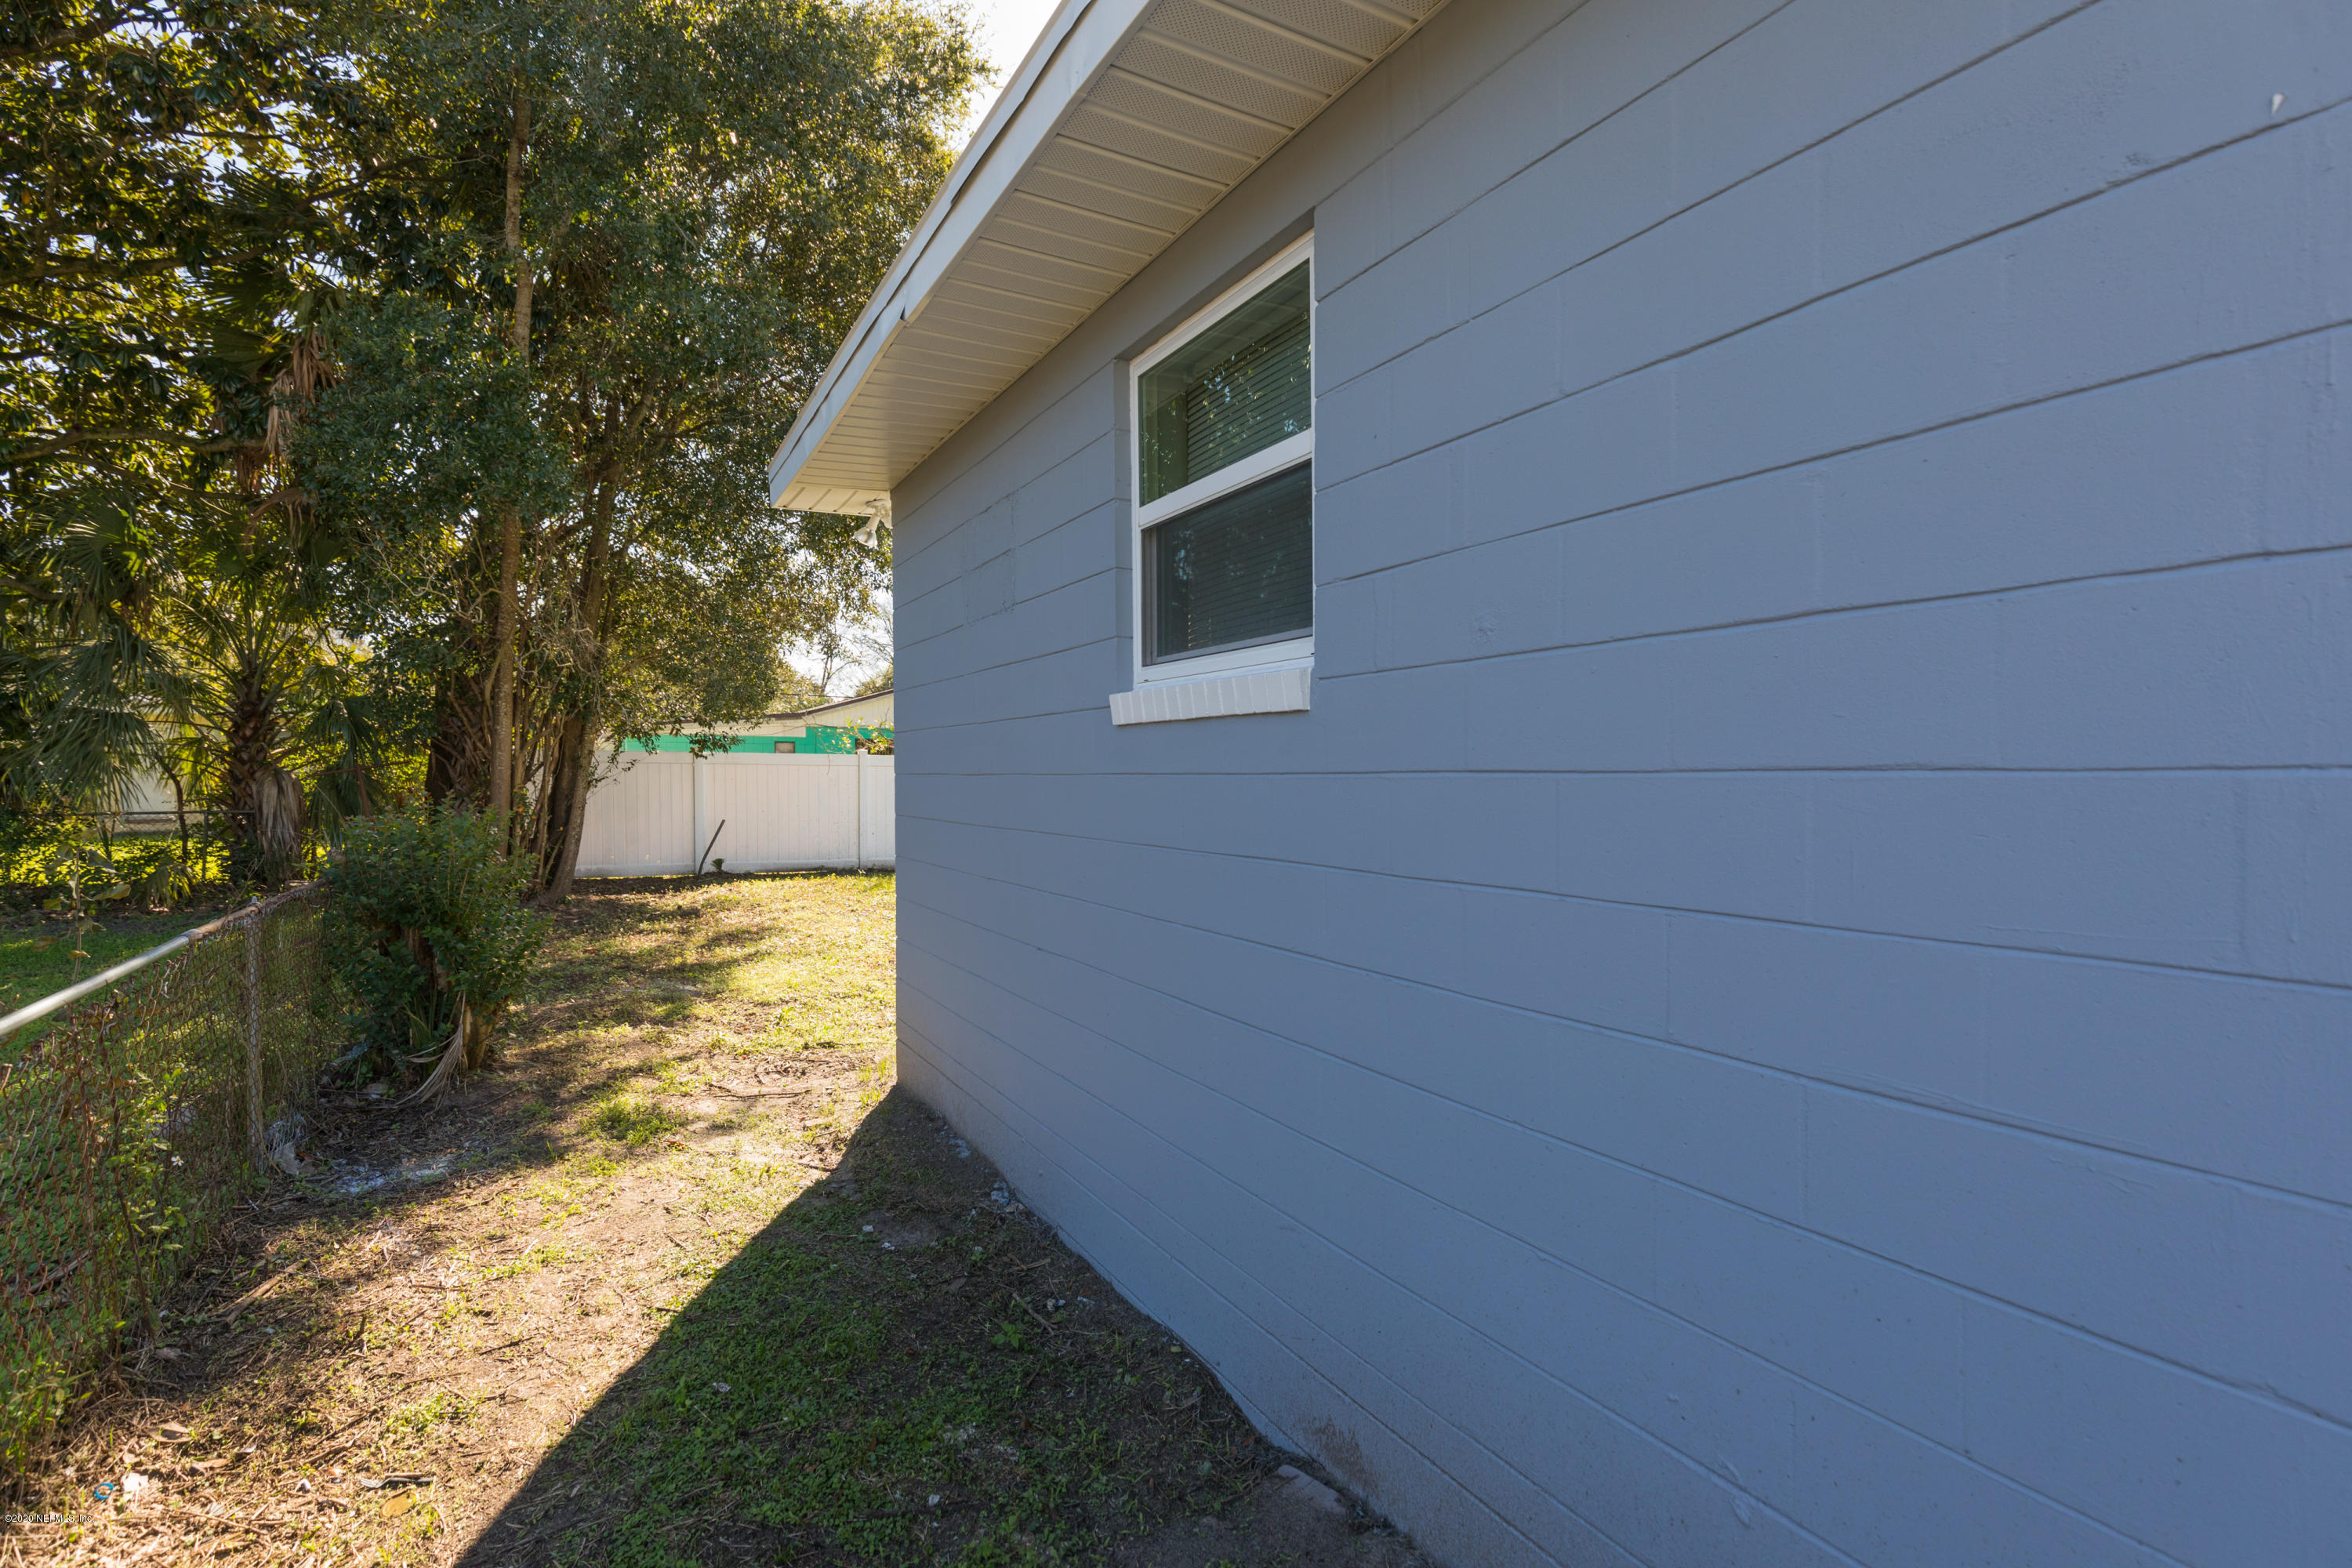 1160 30TH, JACKSONVILLE, FLORIDA 32209, 3 Bedrooms Bedrooms, ,2 BathroomsBathrooms,Residential,For sale,30TH,1081711